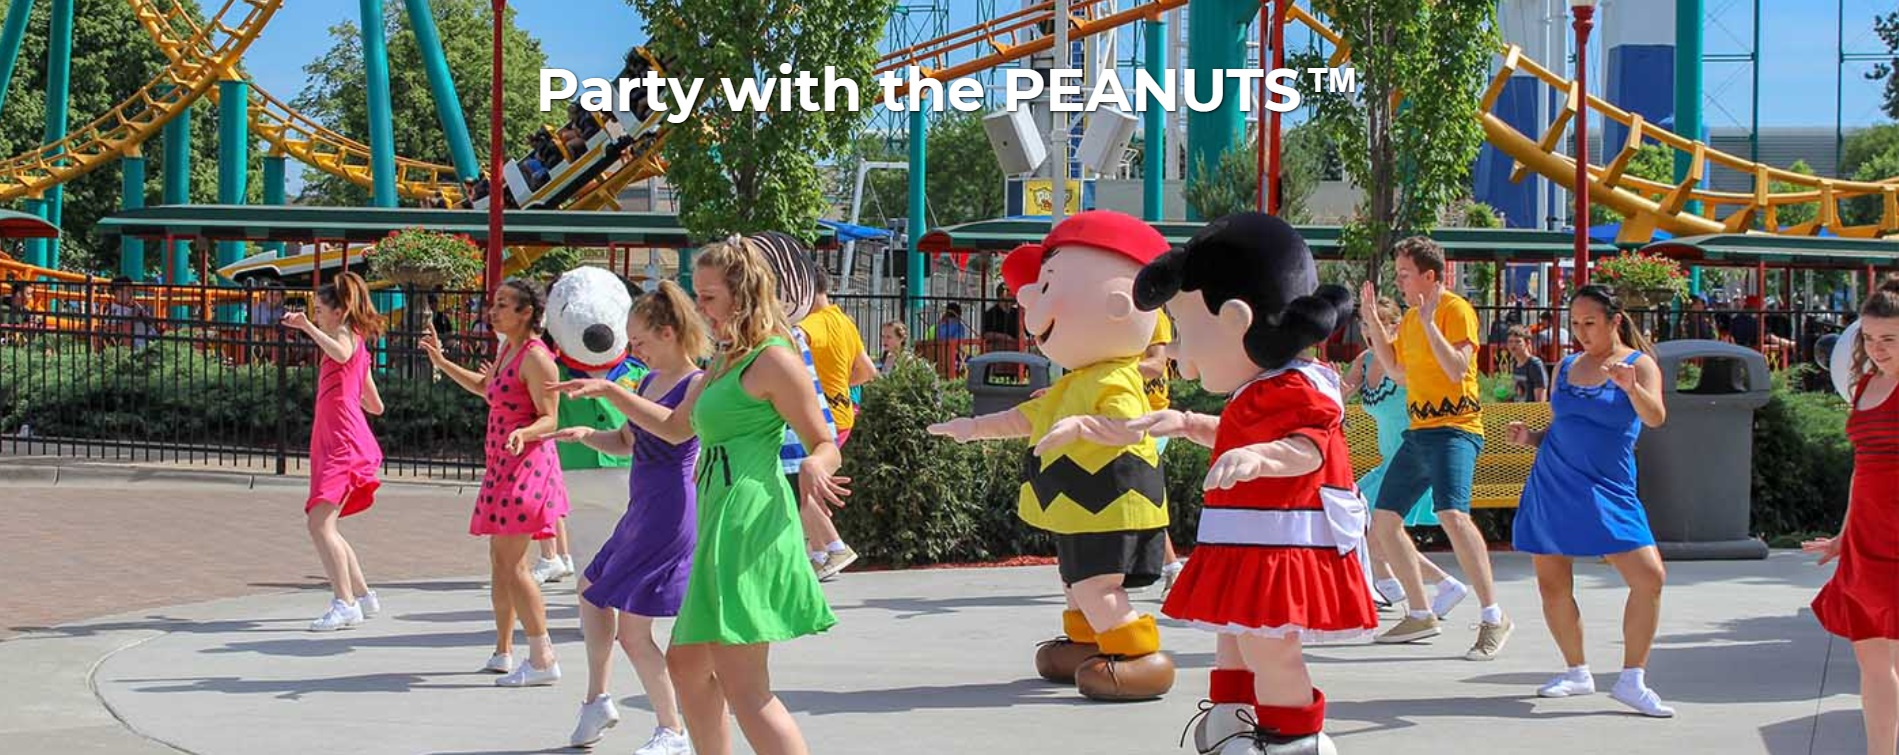 Party with the PEANUTS